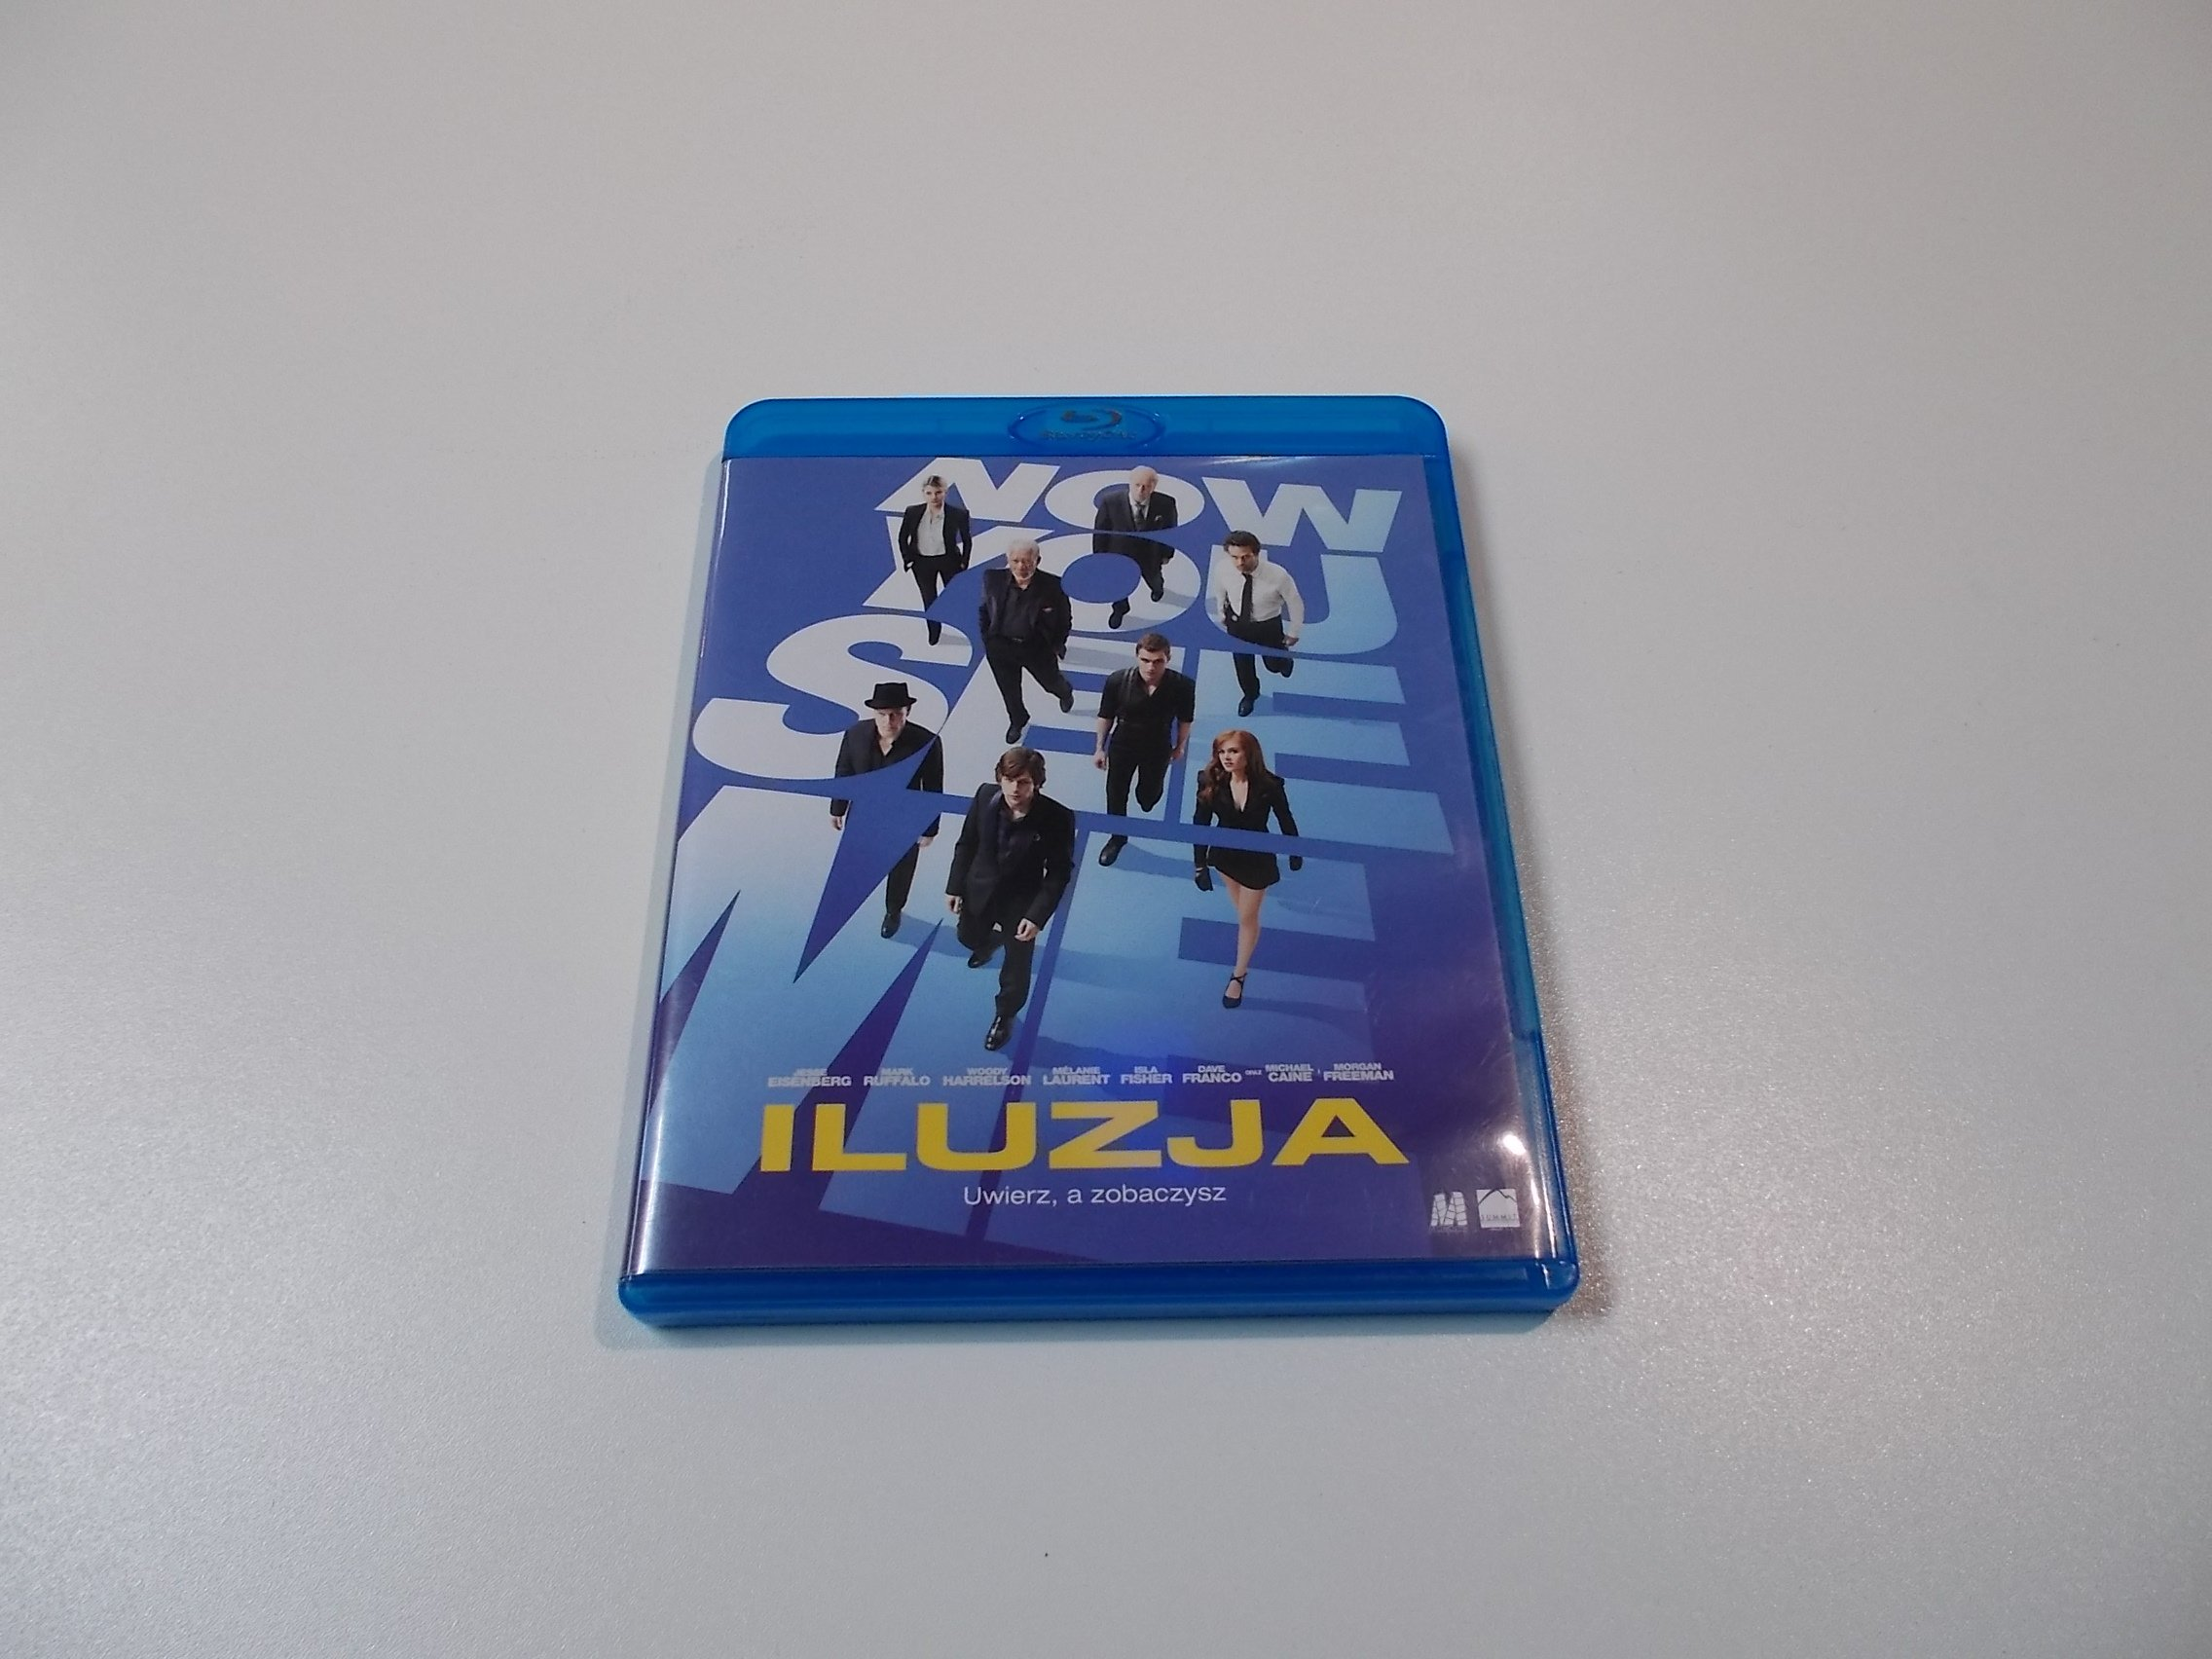 ILUZJA - NOW YOU SEE ME - Blu-ray - Sklep